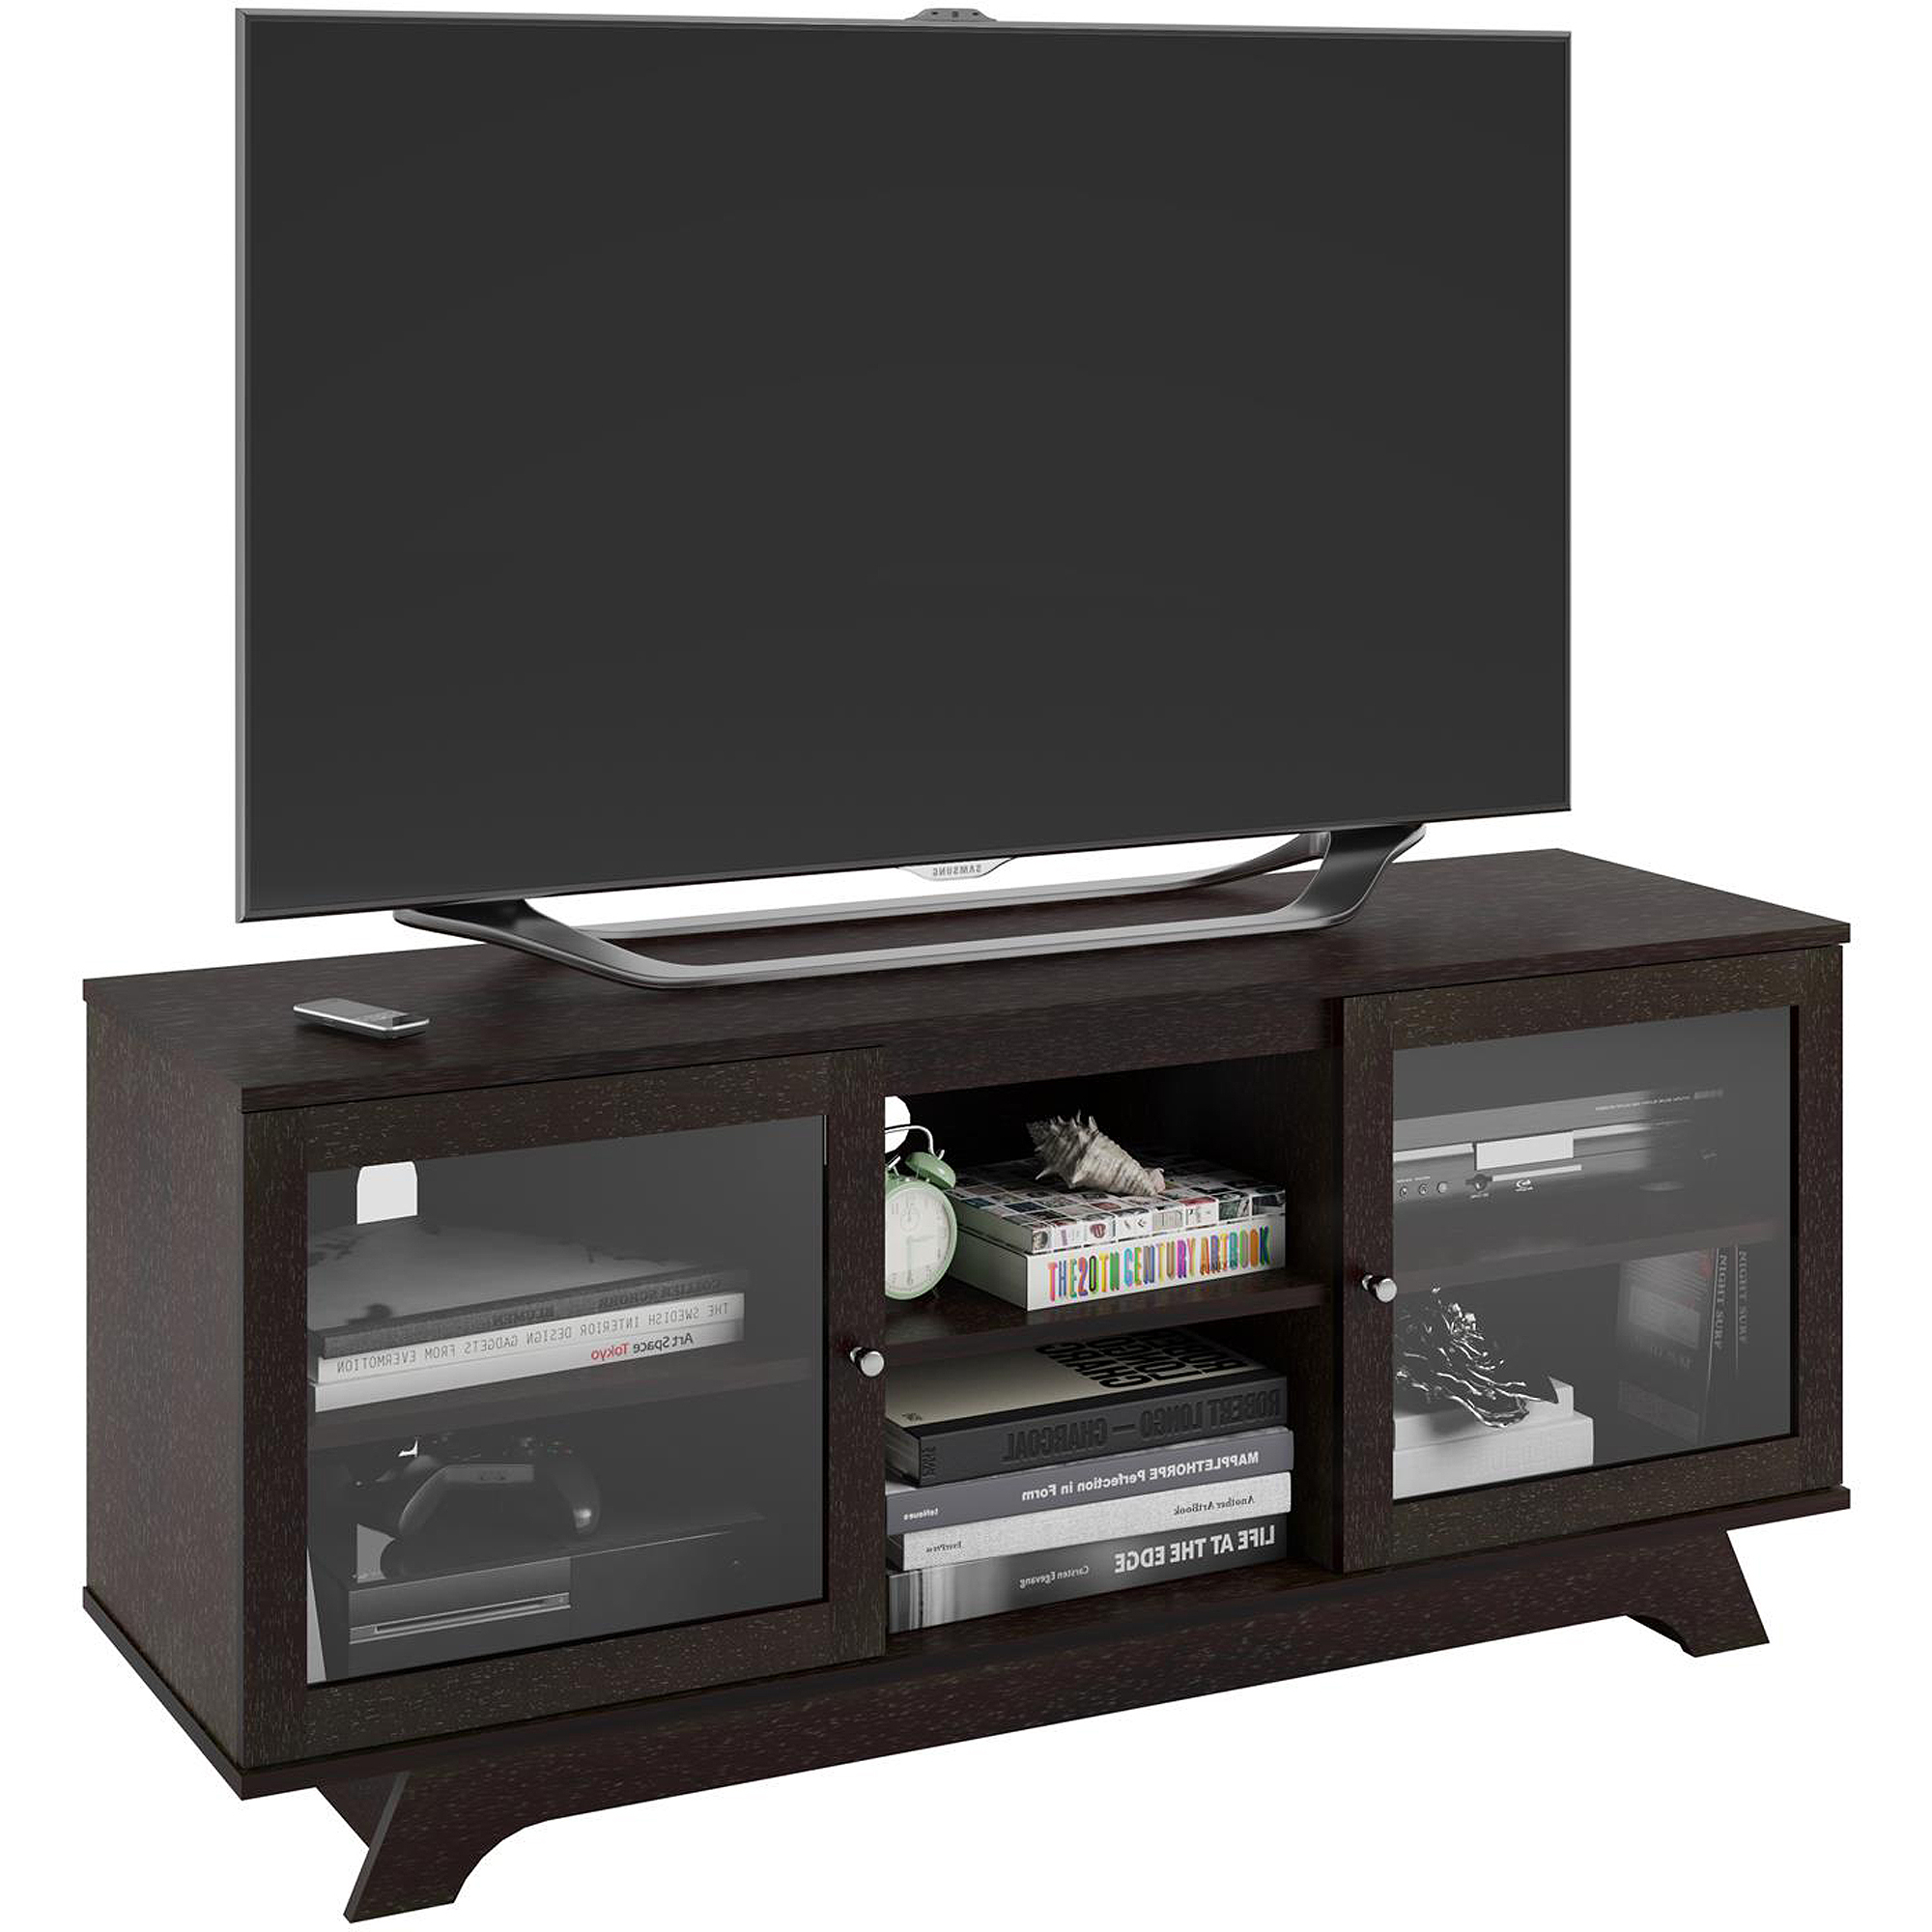 "Ameriwood Home Englewood Tv Stand For Tvs Up To 55"", Espresso Inside Popular Wooden Tv Stands For 55 Inch Flat Screen (Gallery 13 of 20)"